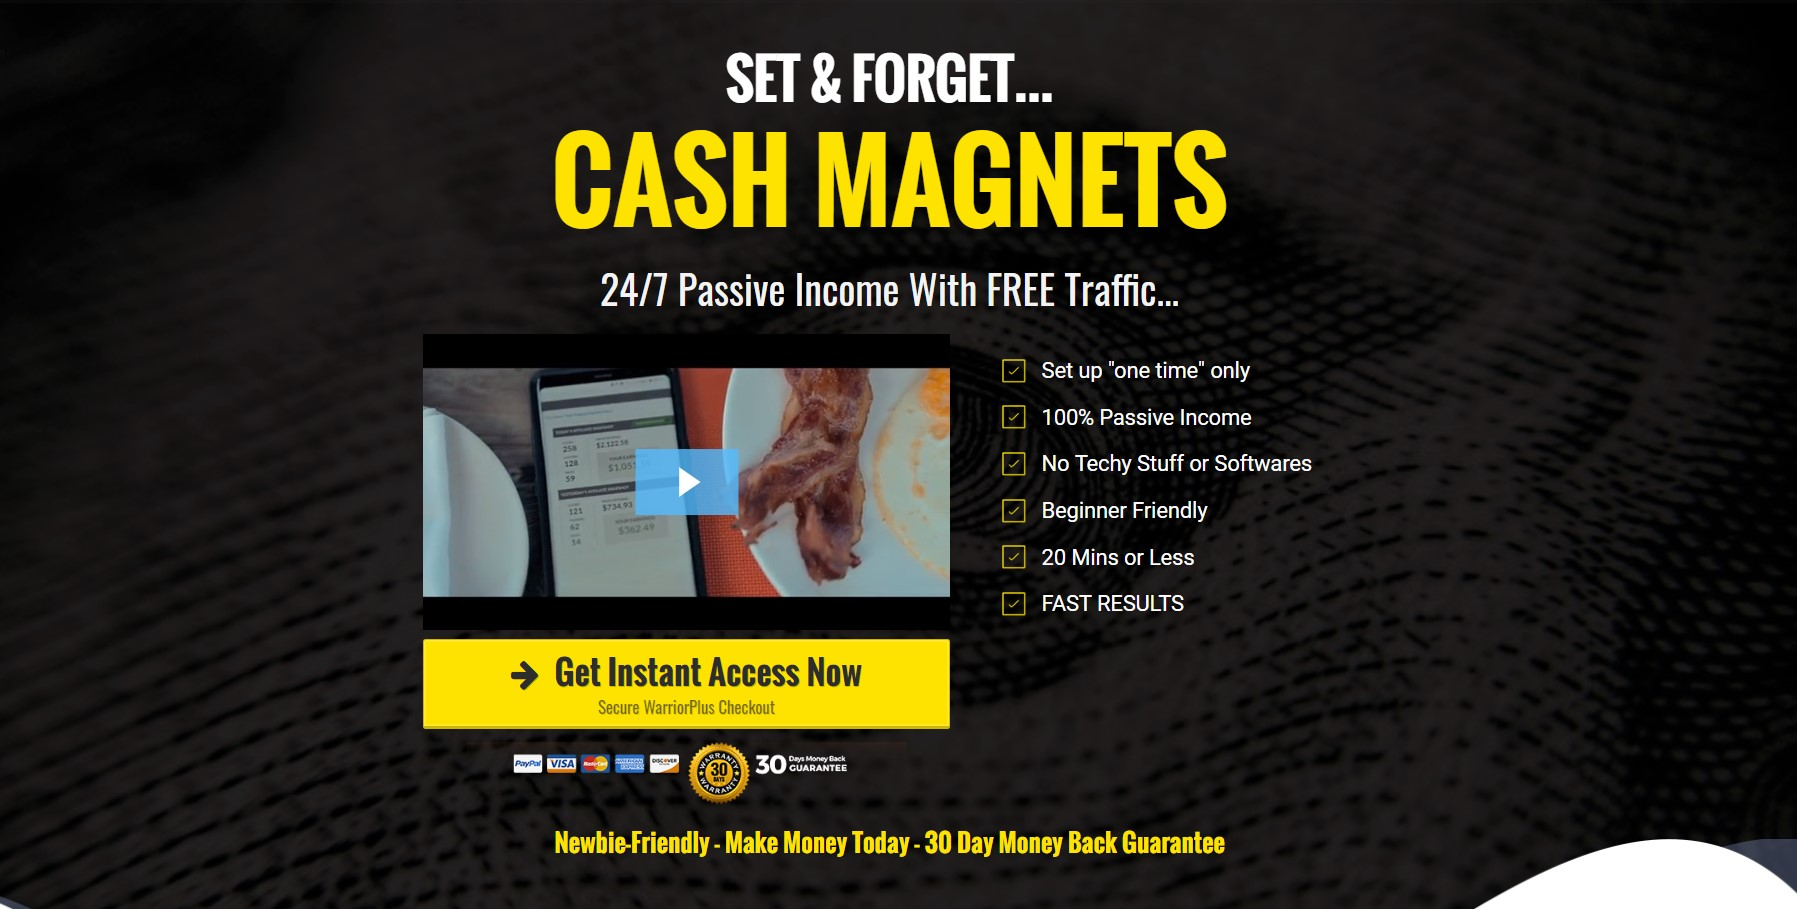 "Set & FOrget... CASH MAGNETS 24/7 Passive Income with FREE Traffic... Get Instant Access Now Secure WarriorPlus Checkout Set up ""one time"" only 100% Passive Income No Techy Stuff or Softwares Beginner Friendly 20 Mins or Less FAST RESULTS"